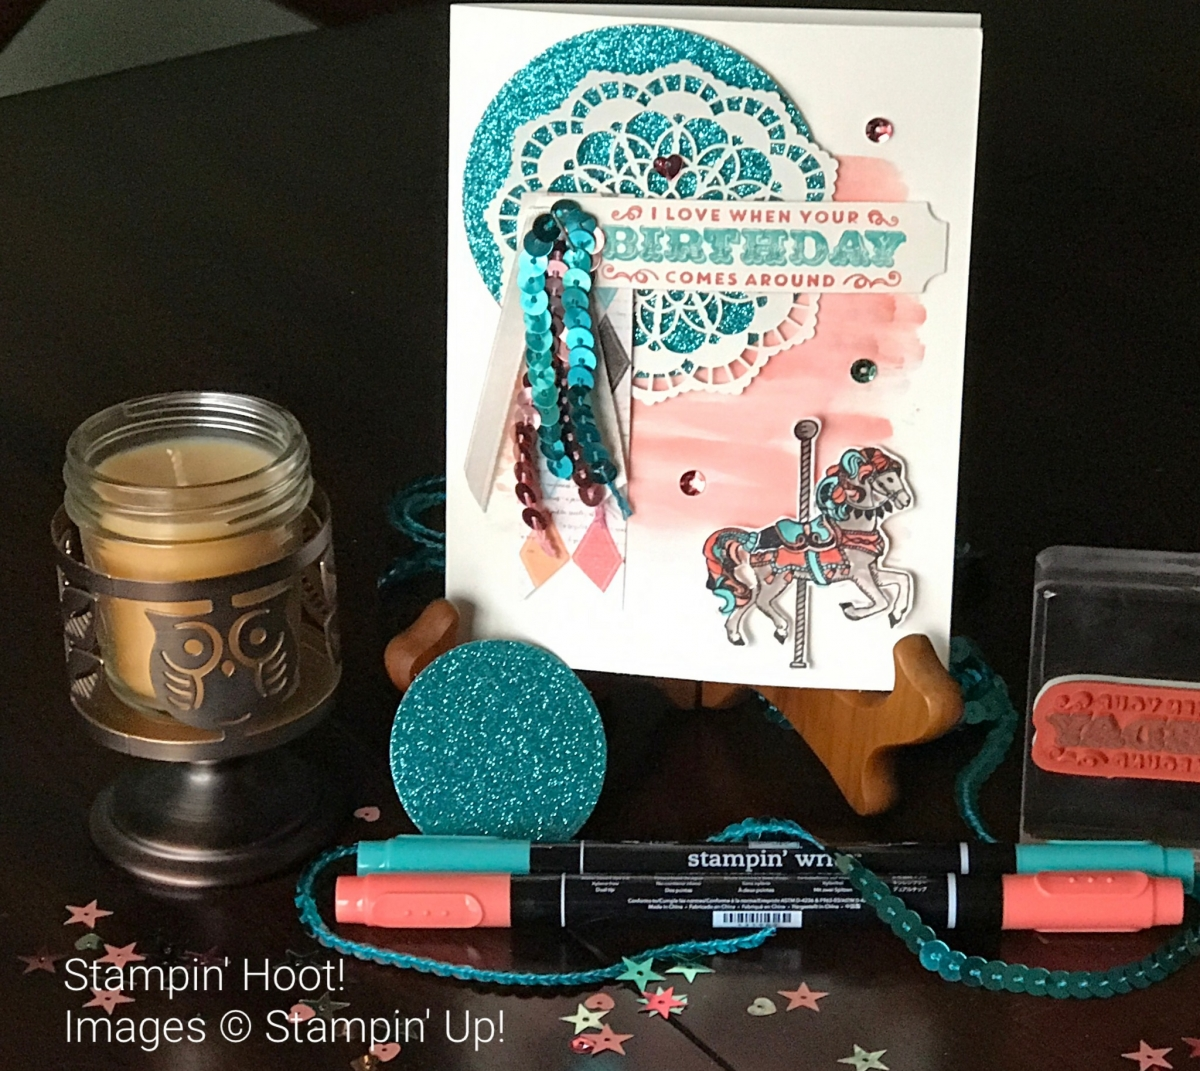 Retiring Stampin' Up! Carousel Birthday, Horse, Glimmer Paper, Watercolor Wash, Sequins Trim, Stampin' Hoot!, Stesha Bloodhart